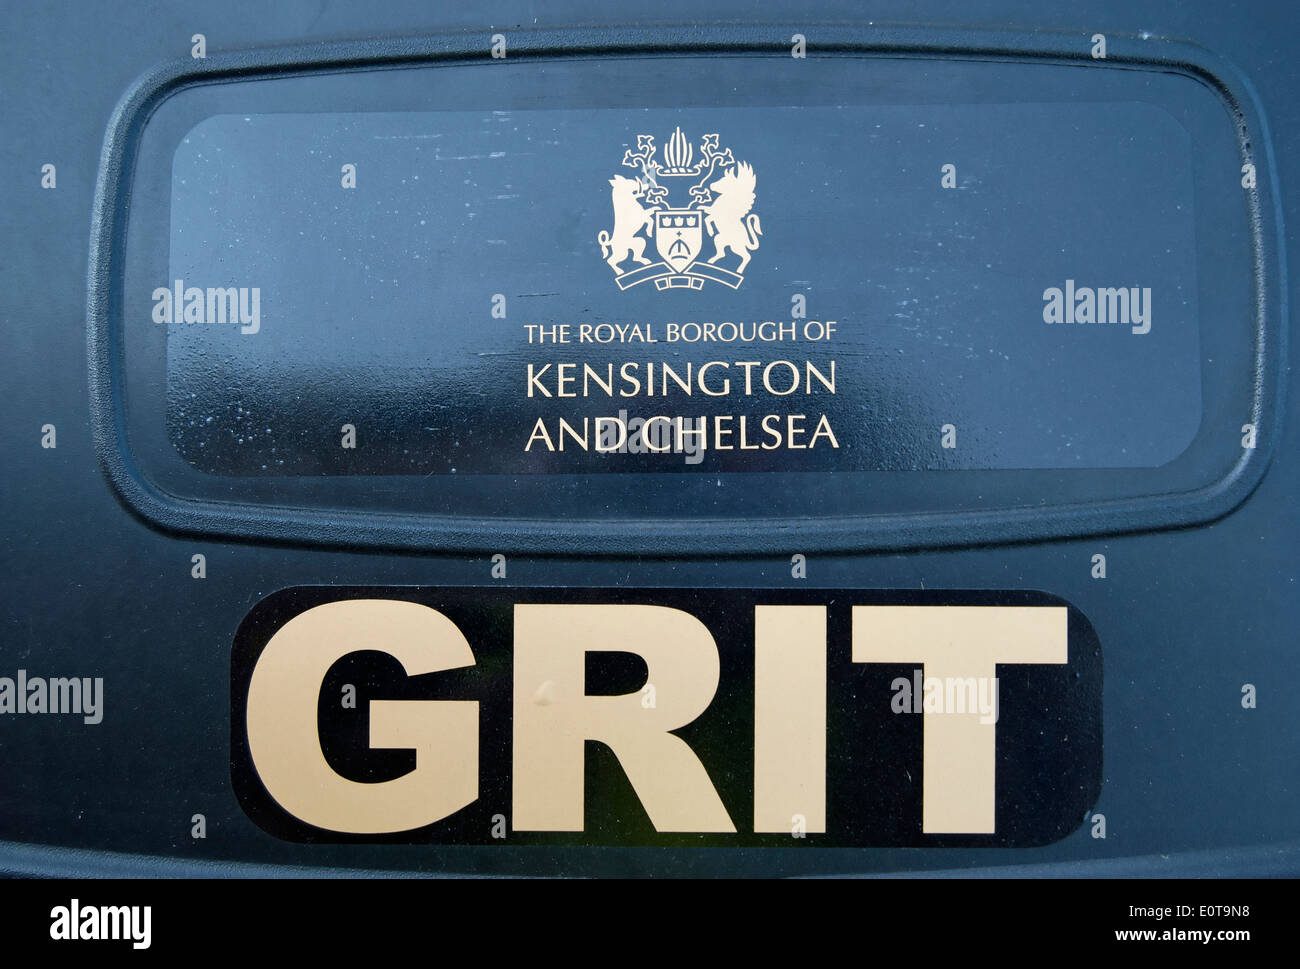 street grit container of the royal borough of kensington and chelsea, london, england Stock Photo